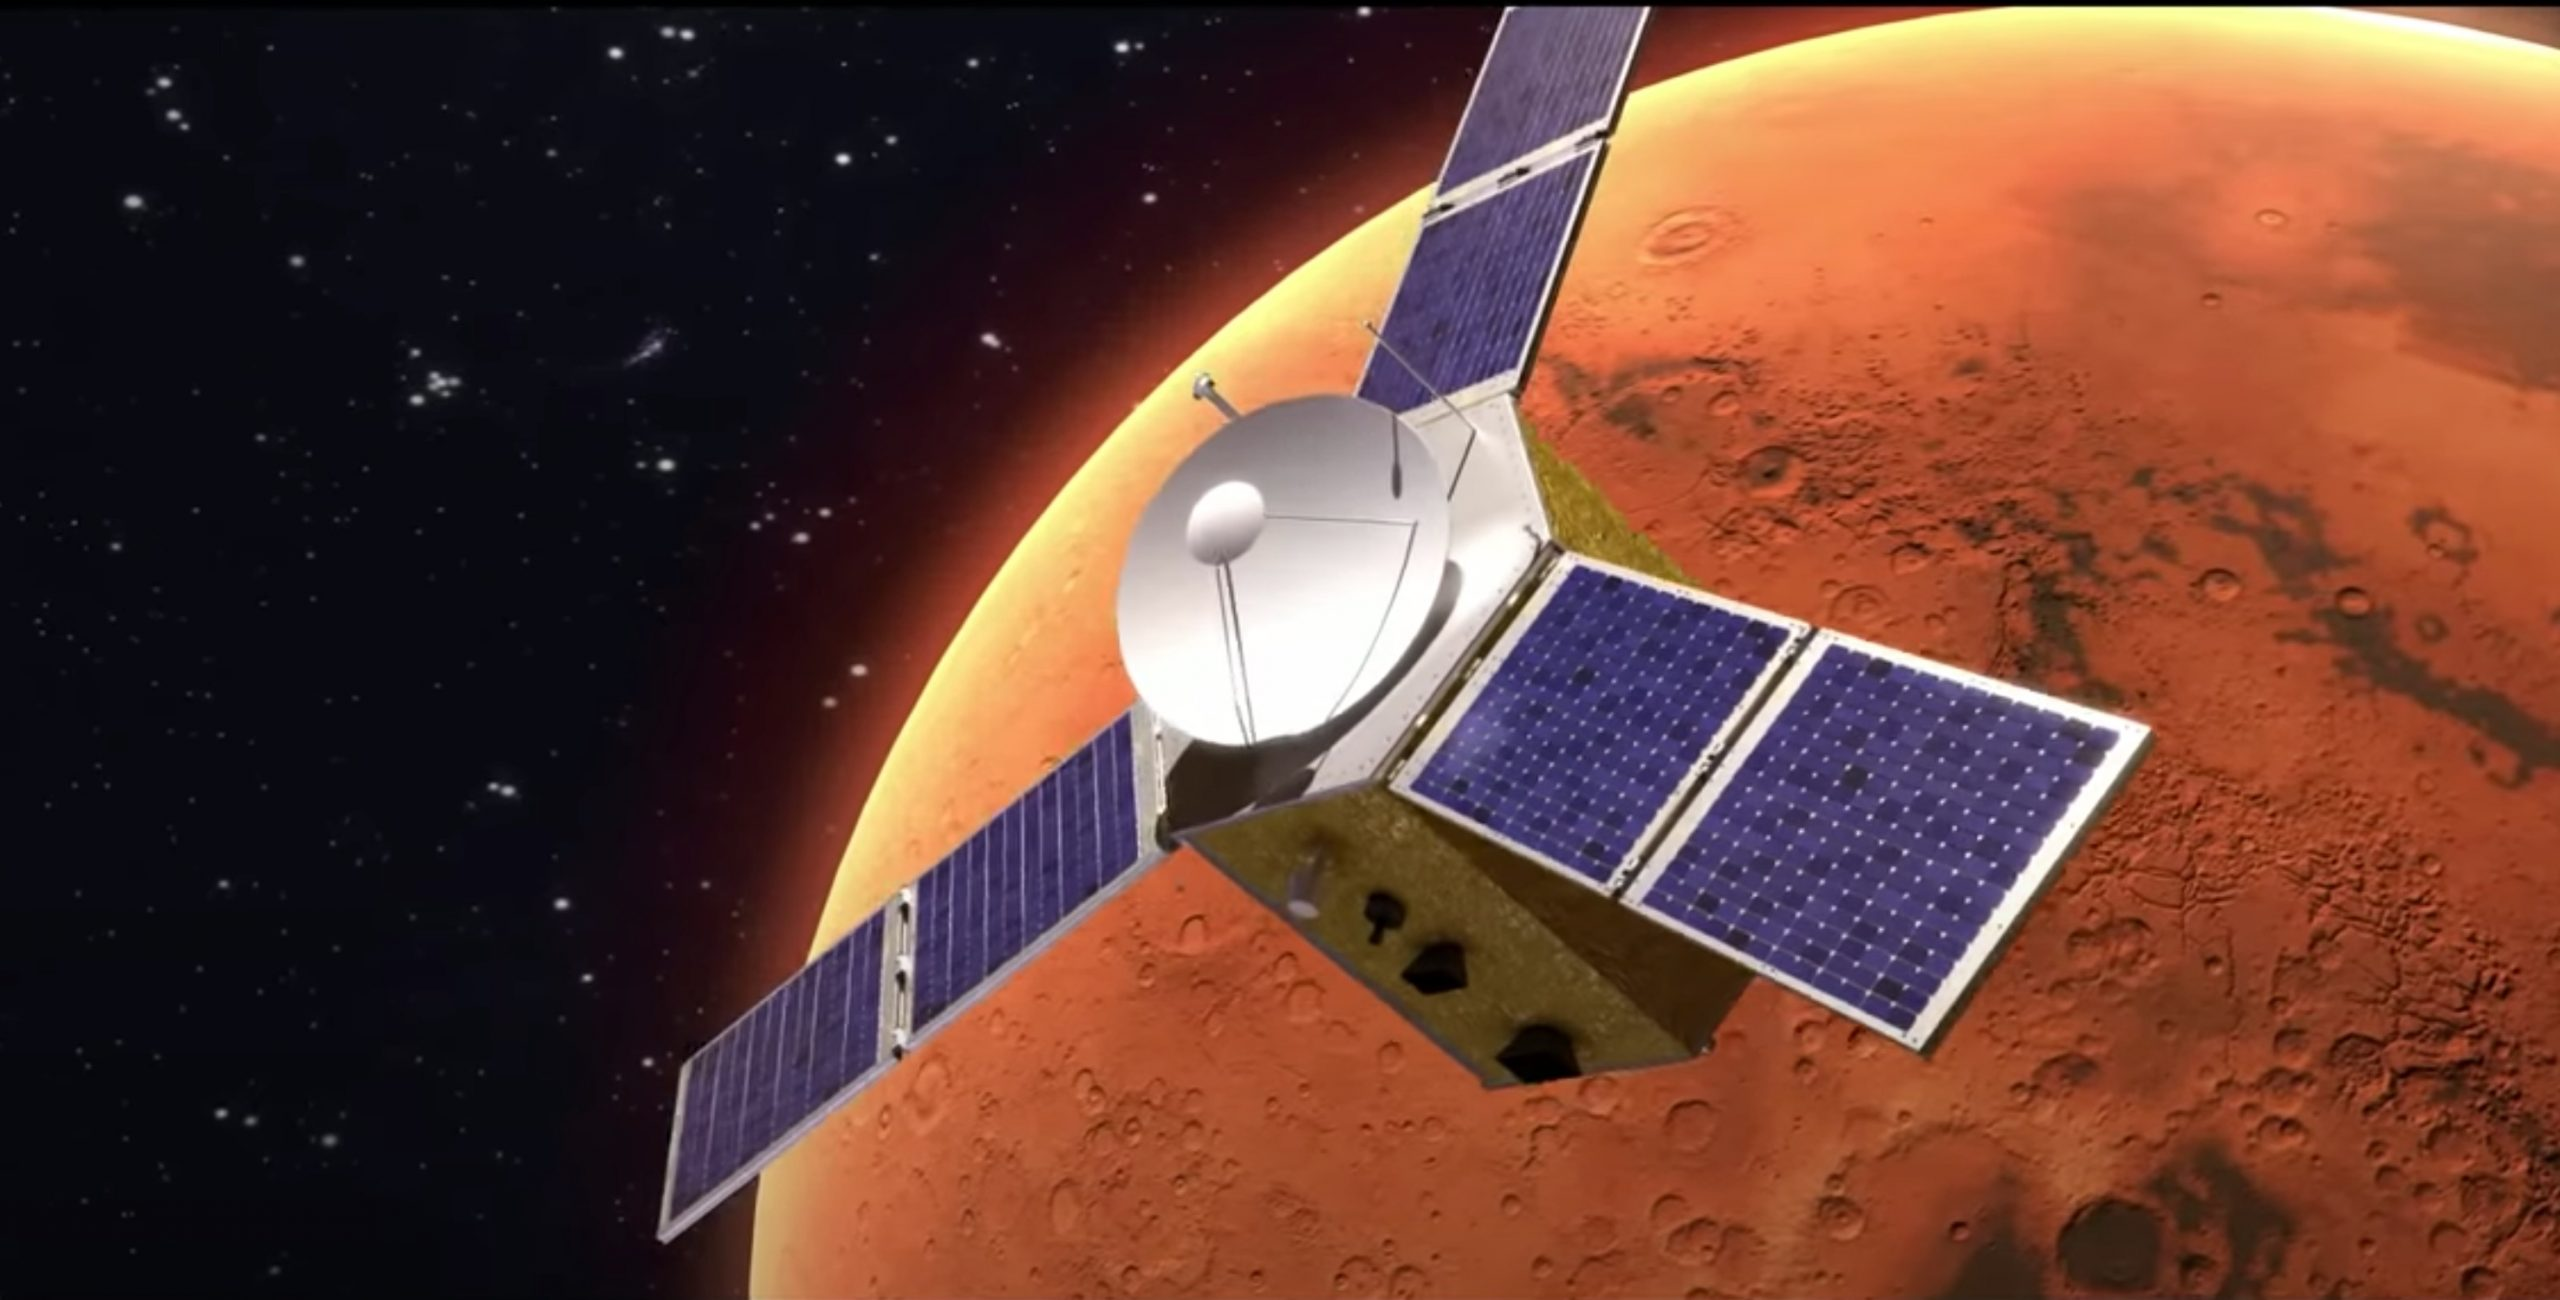 United Arab Emirates Enters Mars Race With Plans For